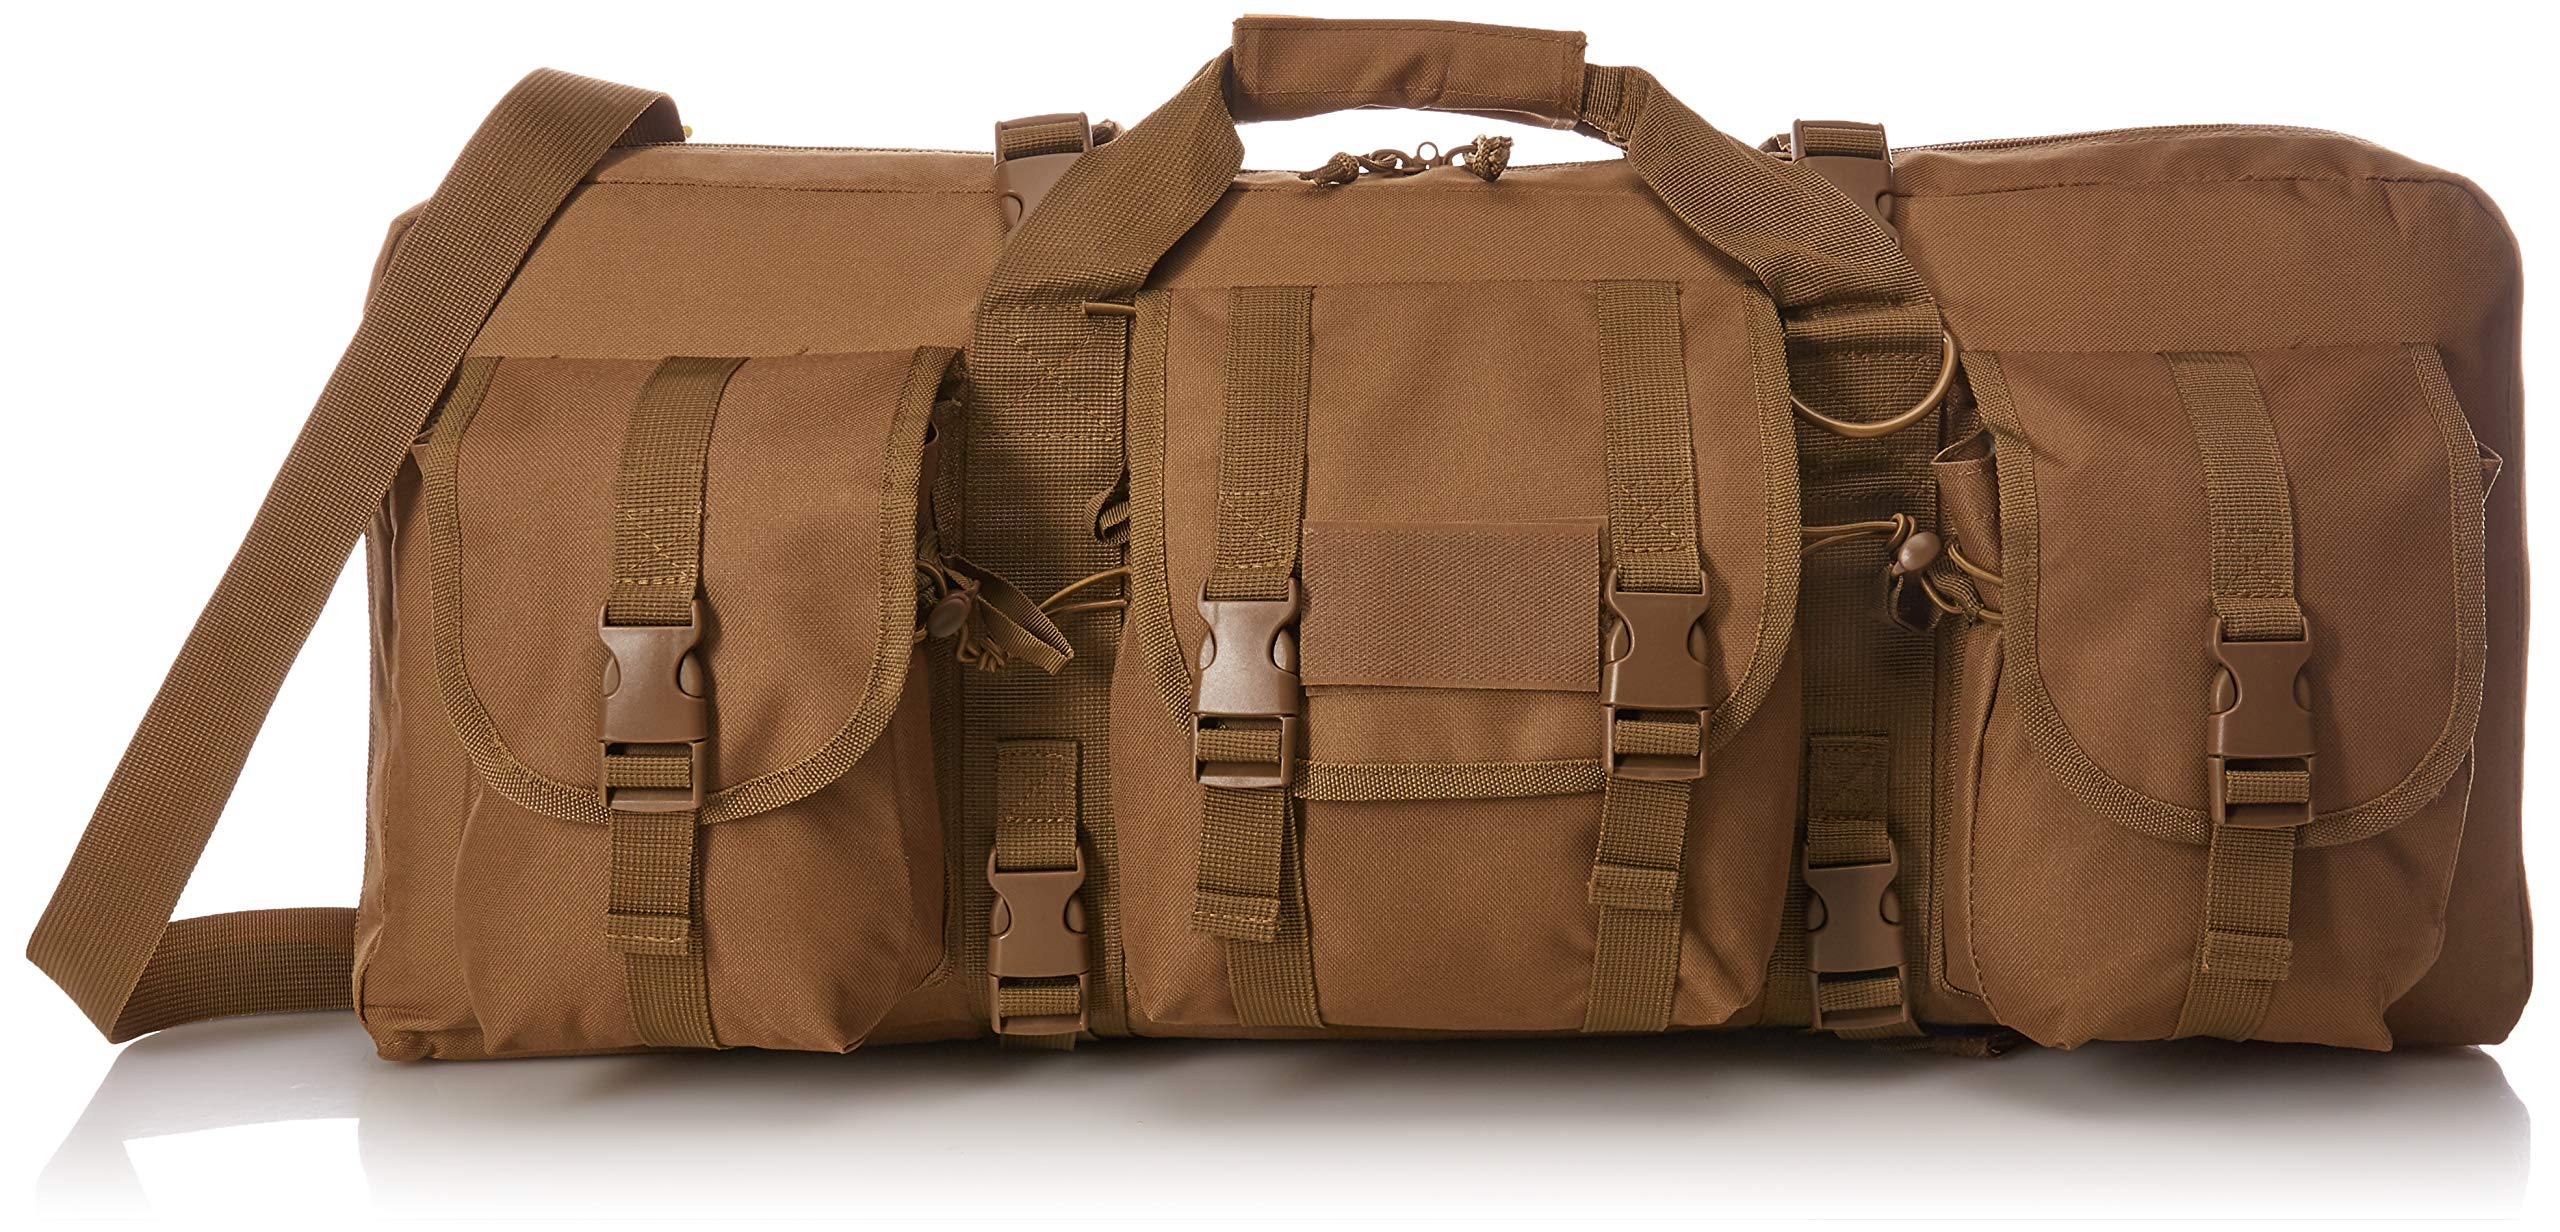 VISM by NcStar Deluxe Pistol and Subgun Gun Case with 3 Accessory Pockets, Tan, 28'' L x 13'' H by NcSTAR